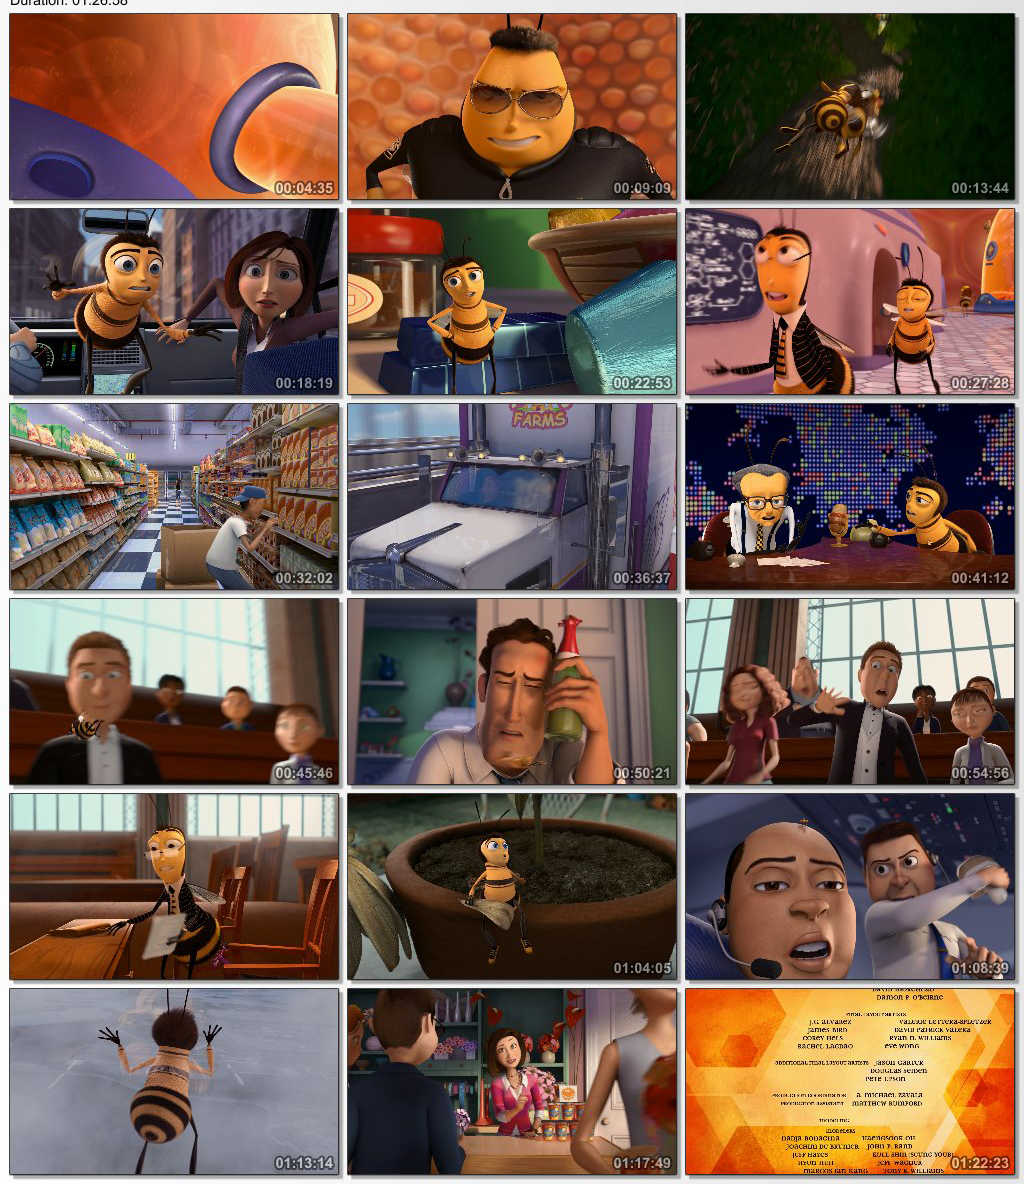 Bee.Movie.2007.1080p.BluRayRip.www.download.ir.mkv_thumbs_[2014.12.01_11.14.15]